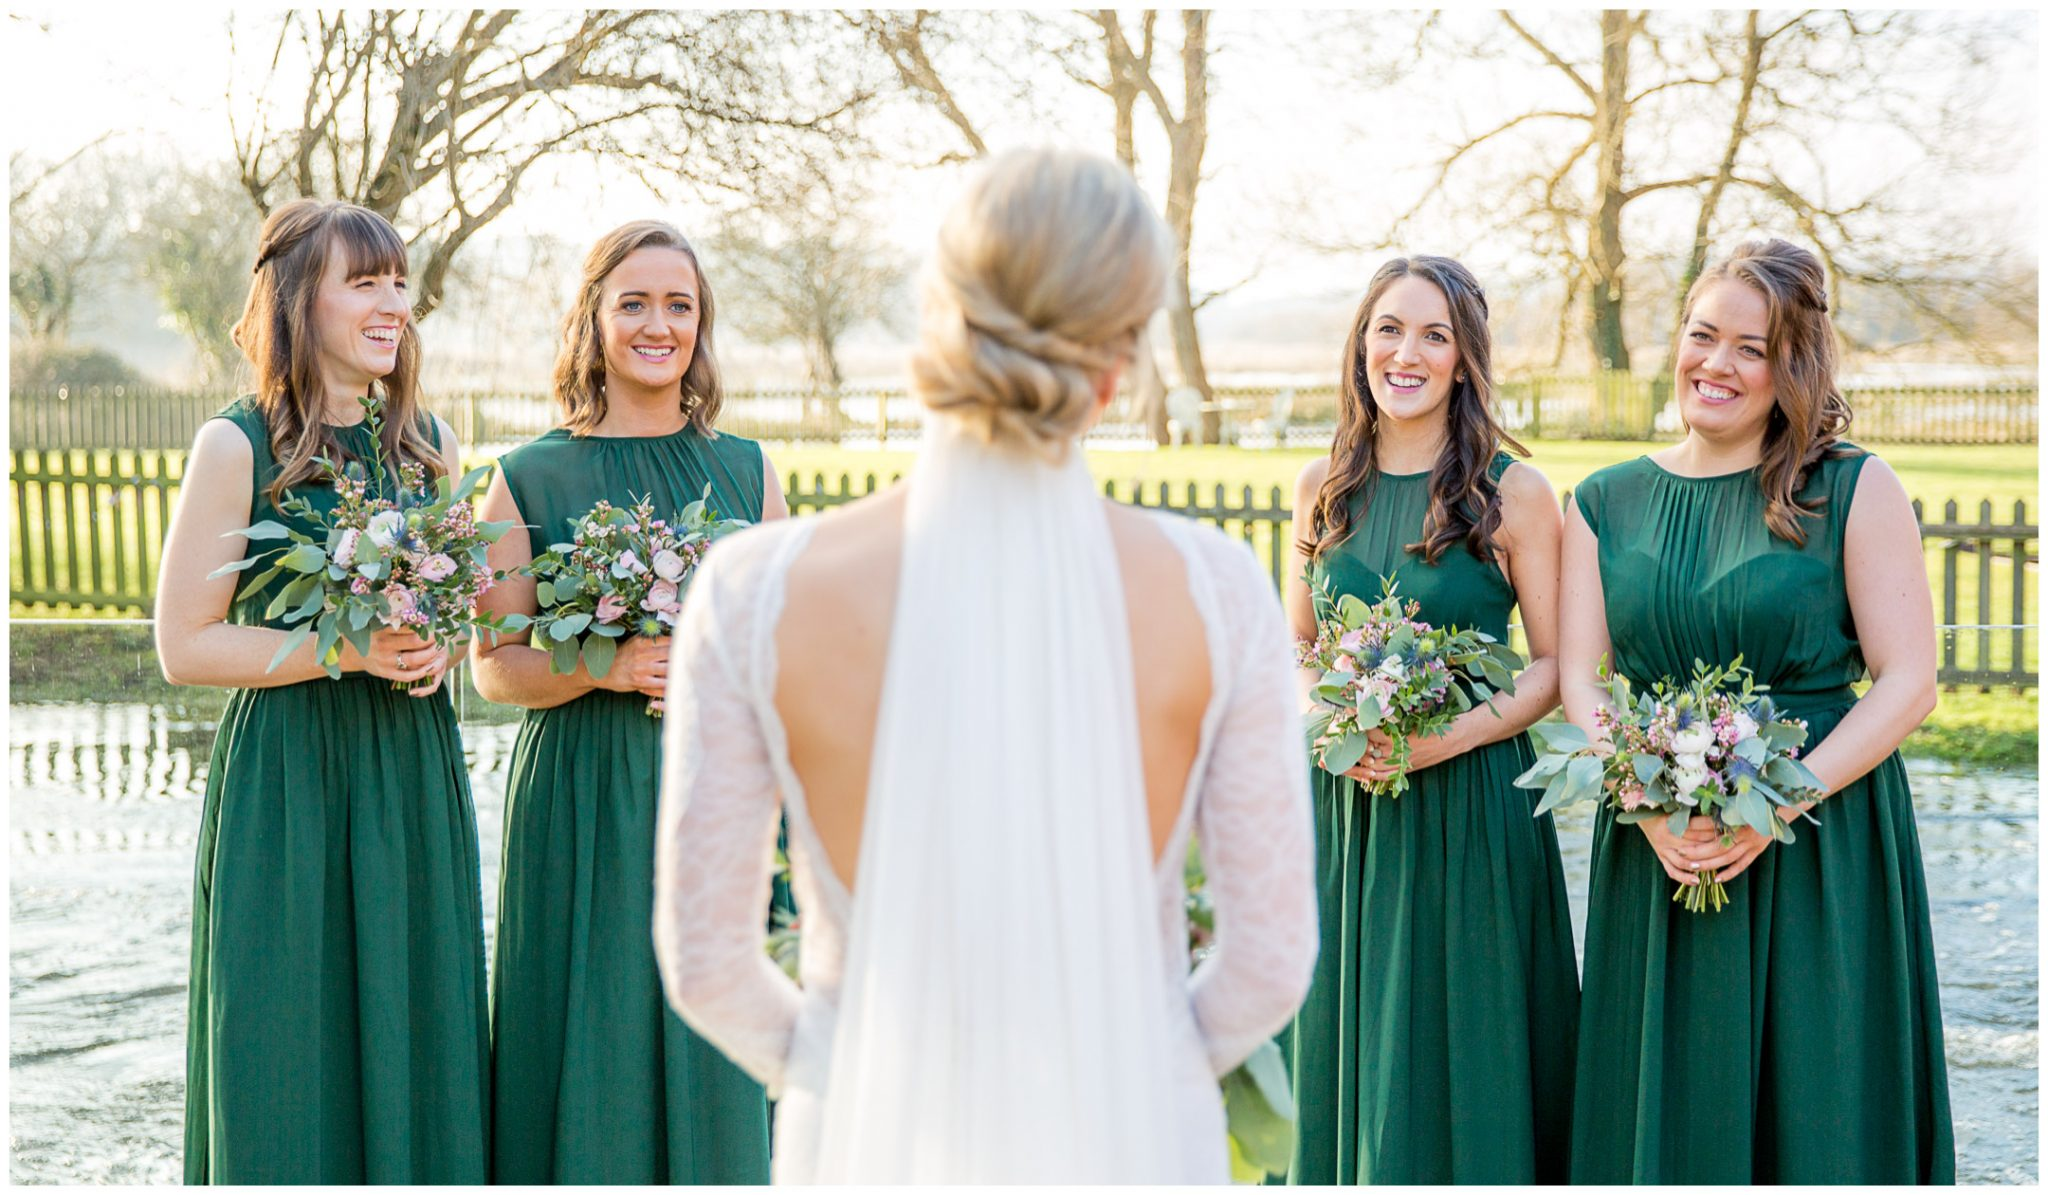 Bride and bridesmaids with the flooded river Avon as a backdrop